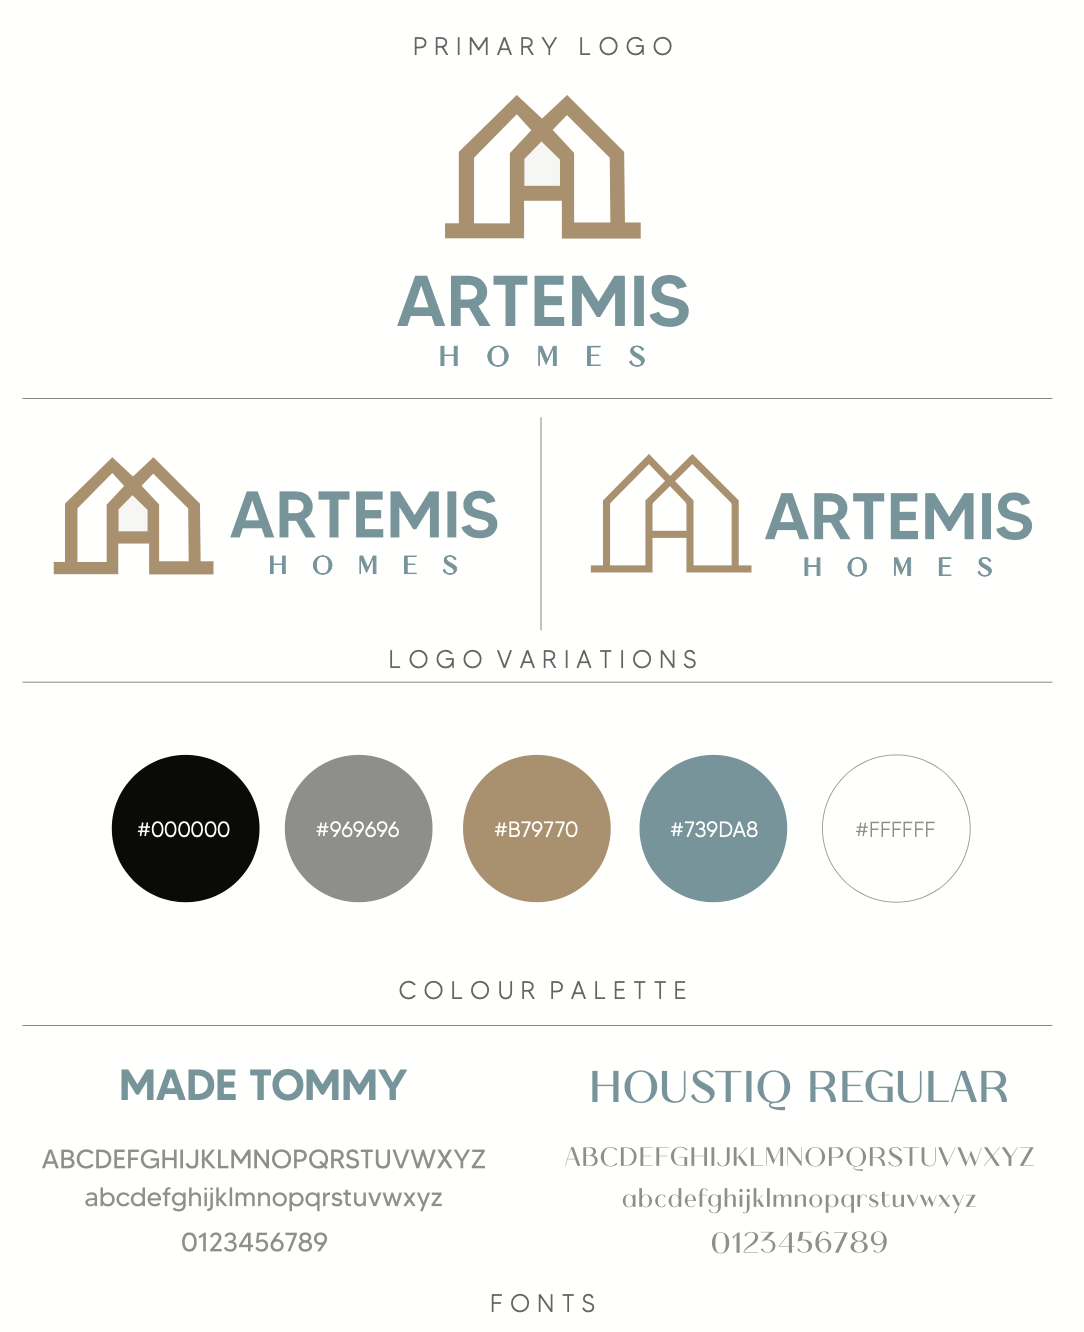 Artemis Homes Sttyle Guide